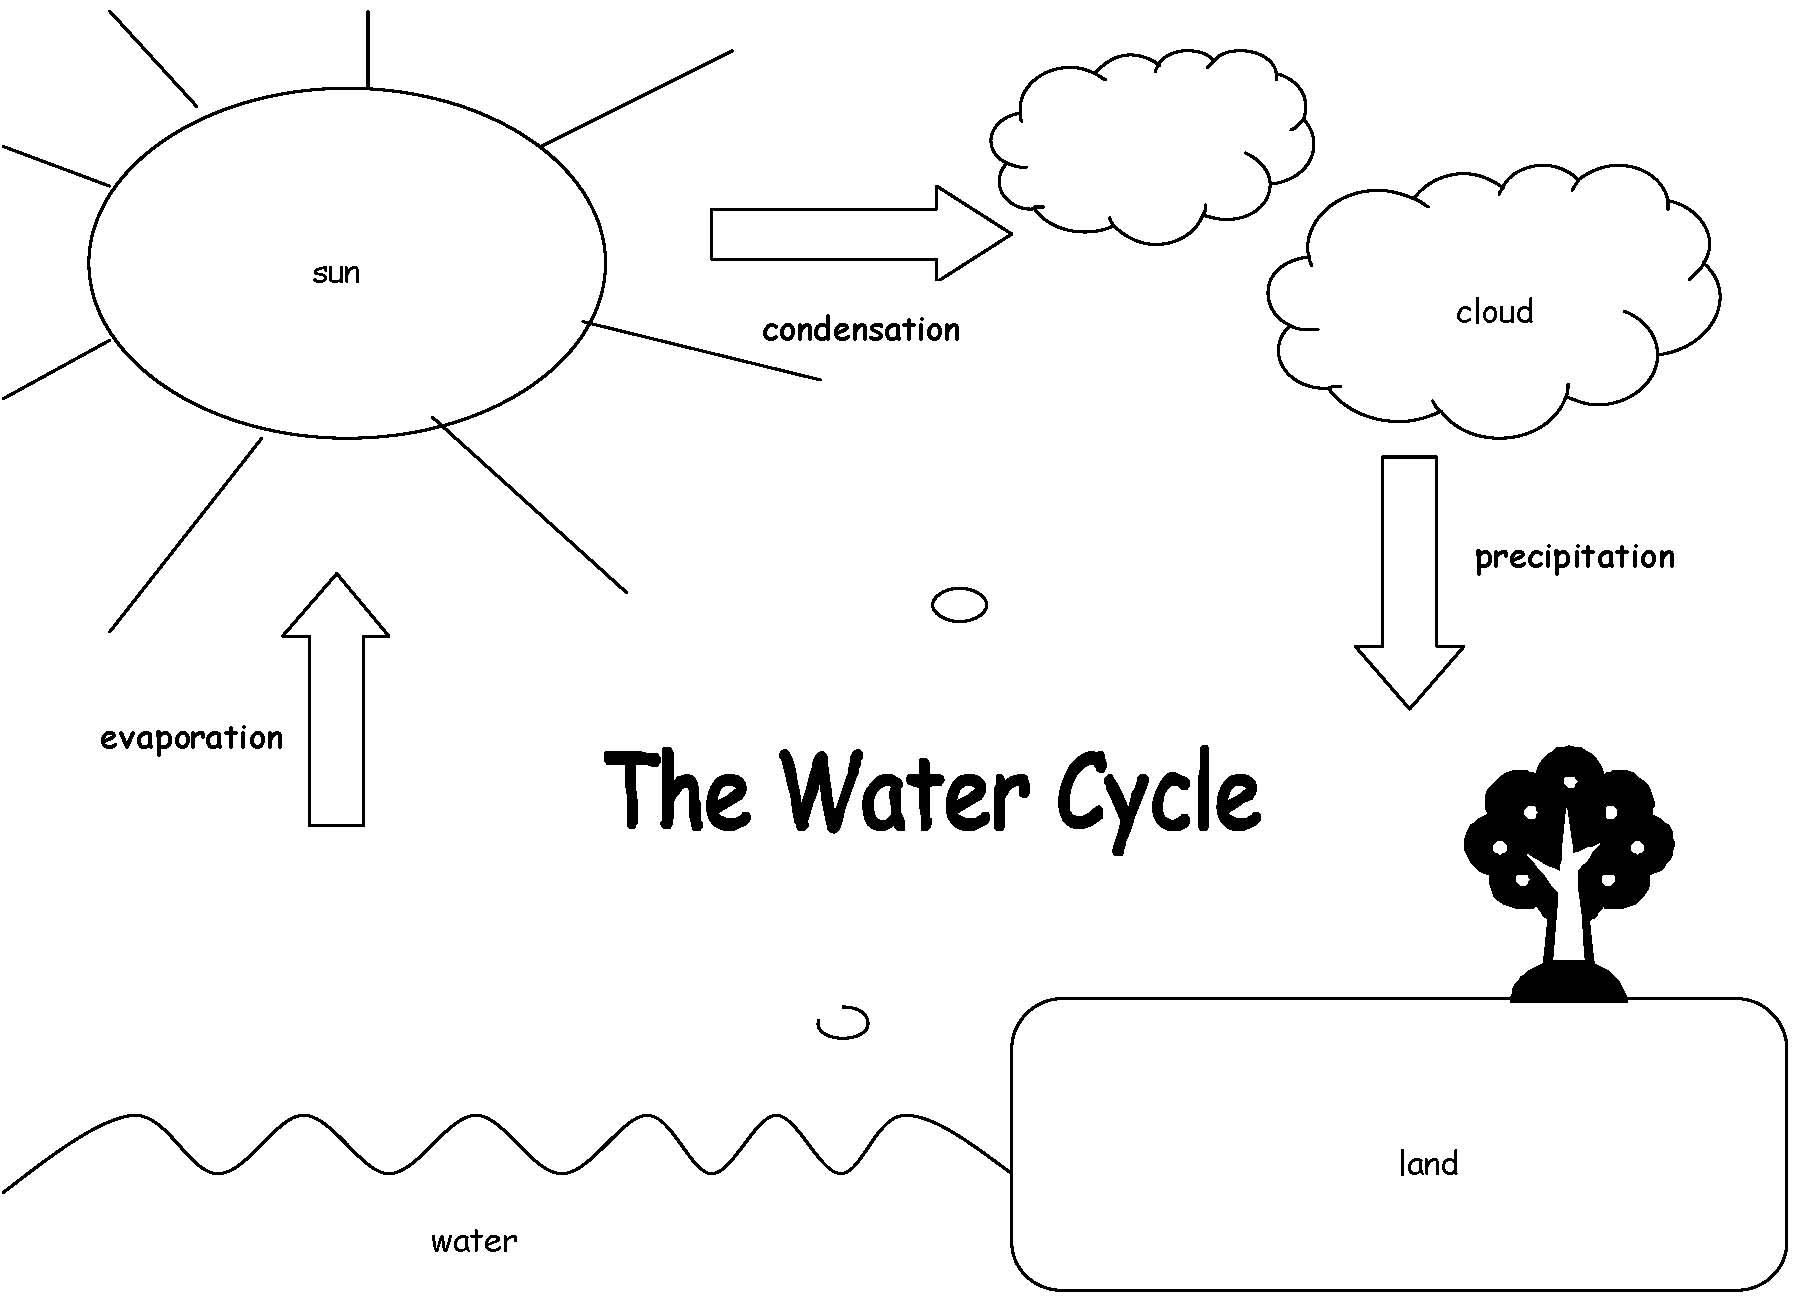 Water Cycle Worksheet For Kids Water free download water cycle – The Water Cycle Worksheet Answers